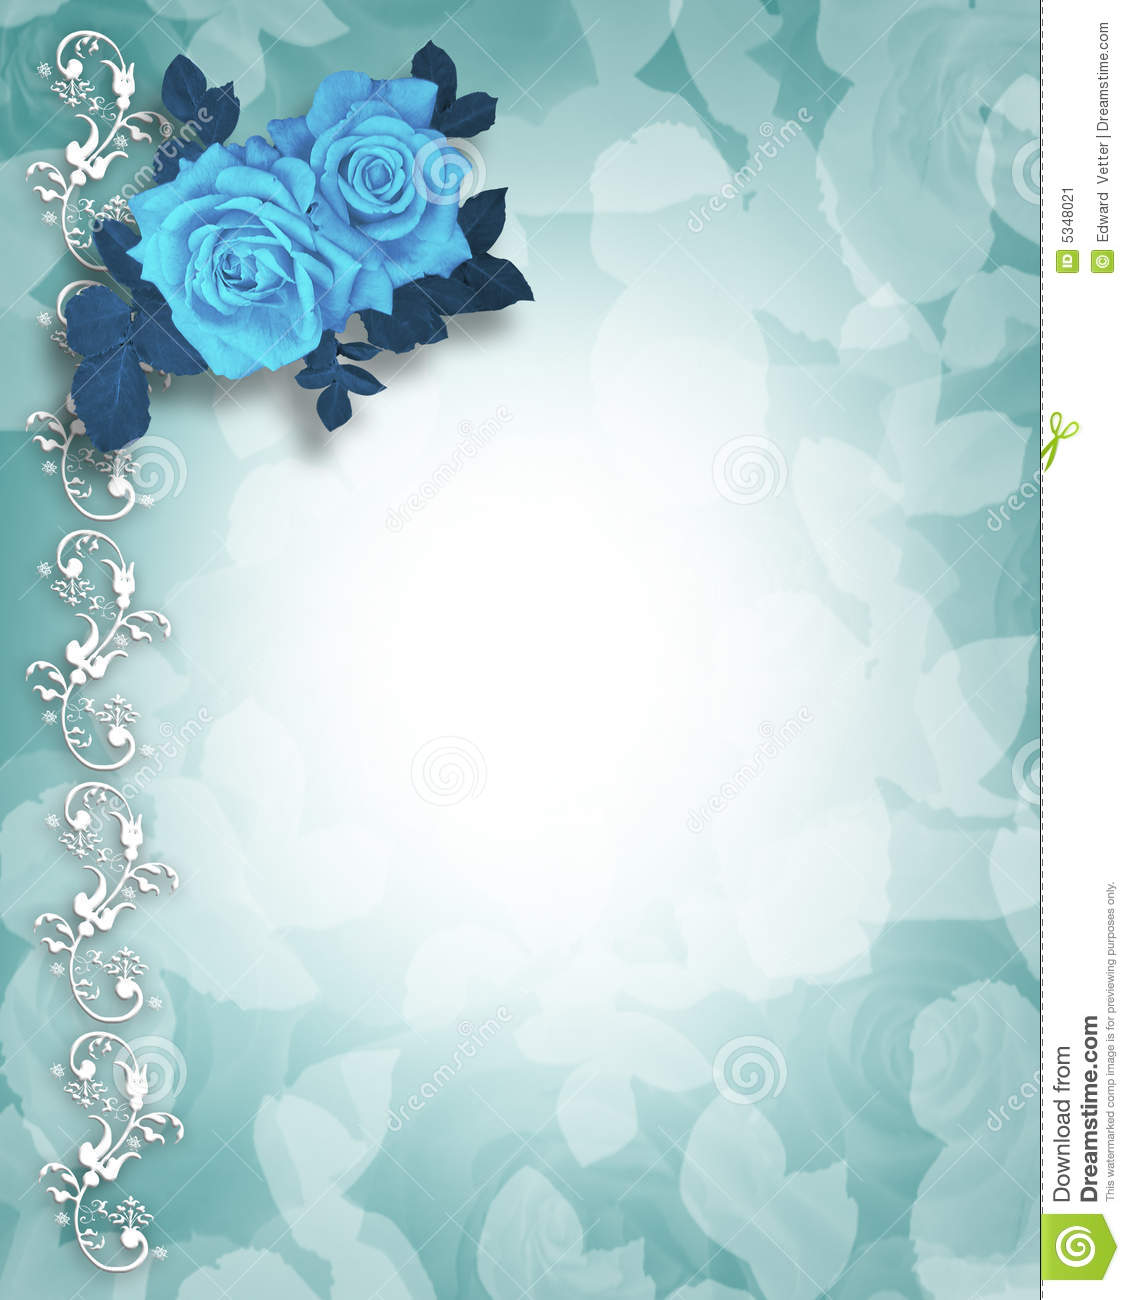 Blue wedding roses